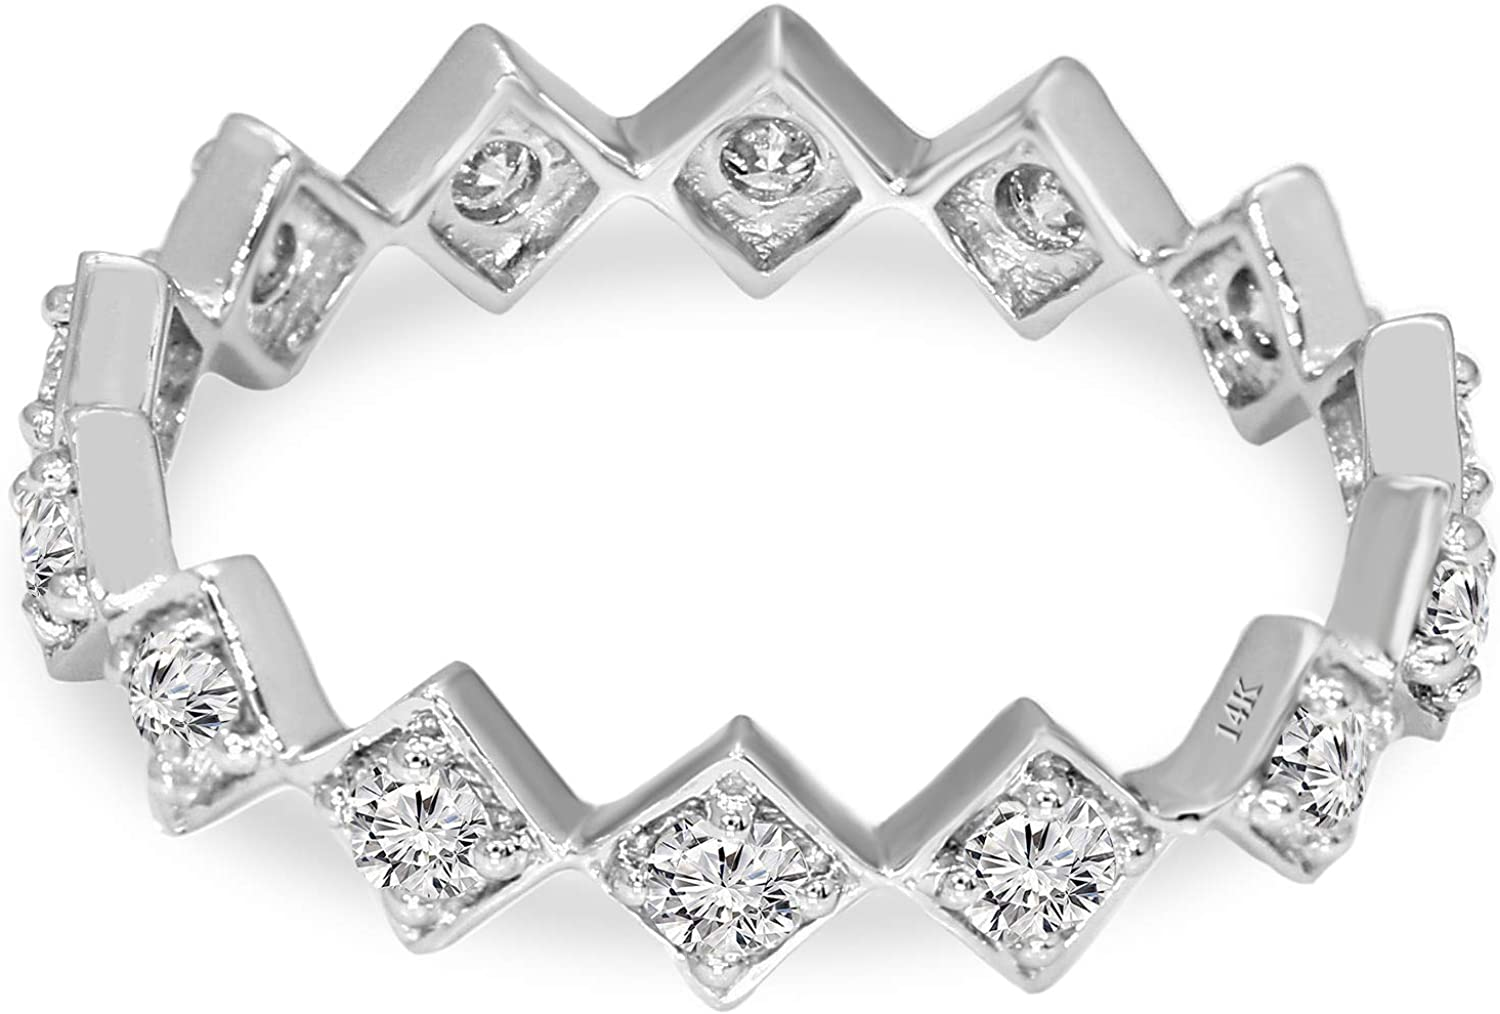 IGI Certified Lab Grown Diamond Ring 10K White Gold 5/8 carat Lab Created Diamond square eternity band Ring For Women (5/8 CTTW, GH - SI Quality Diamond Jewelry For Women)